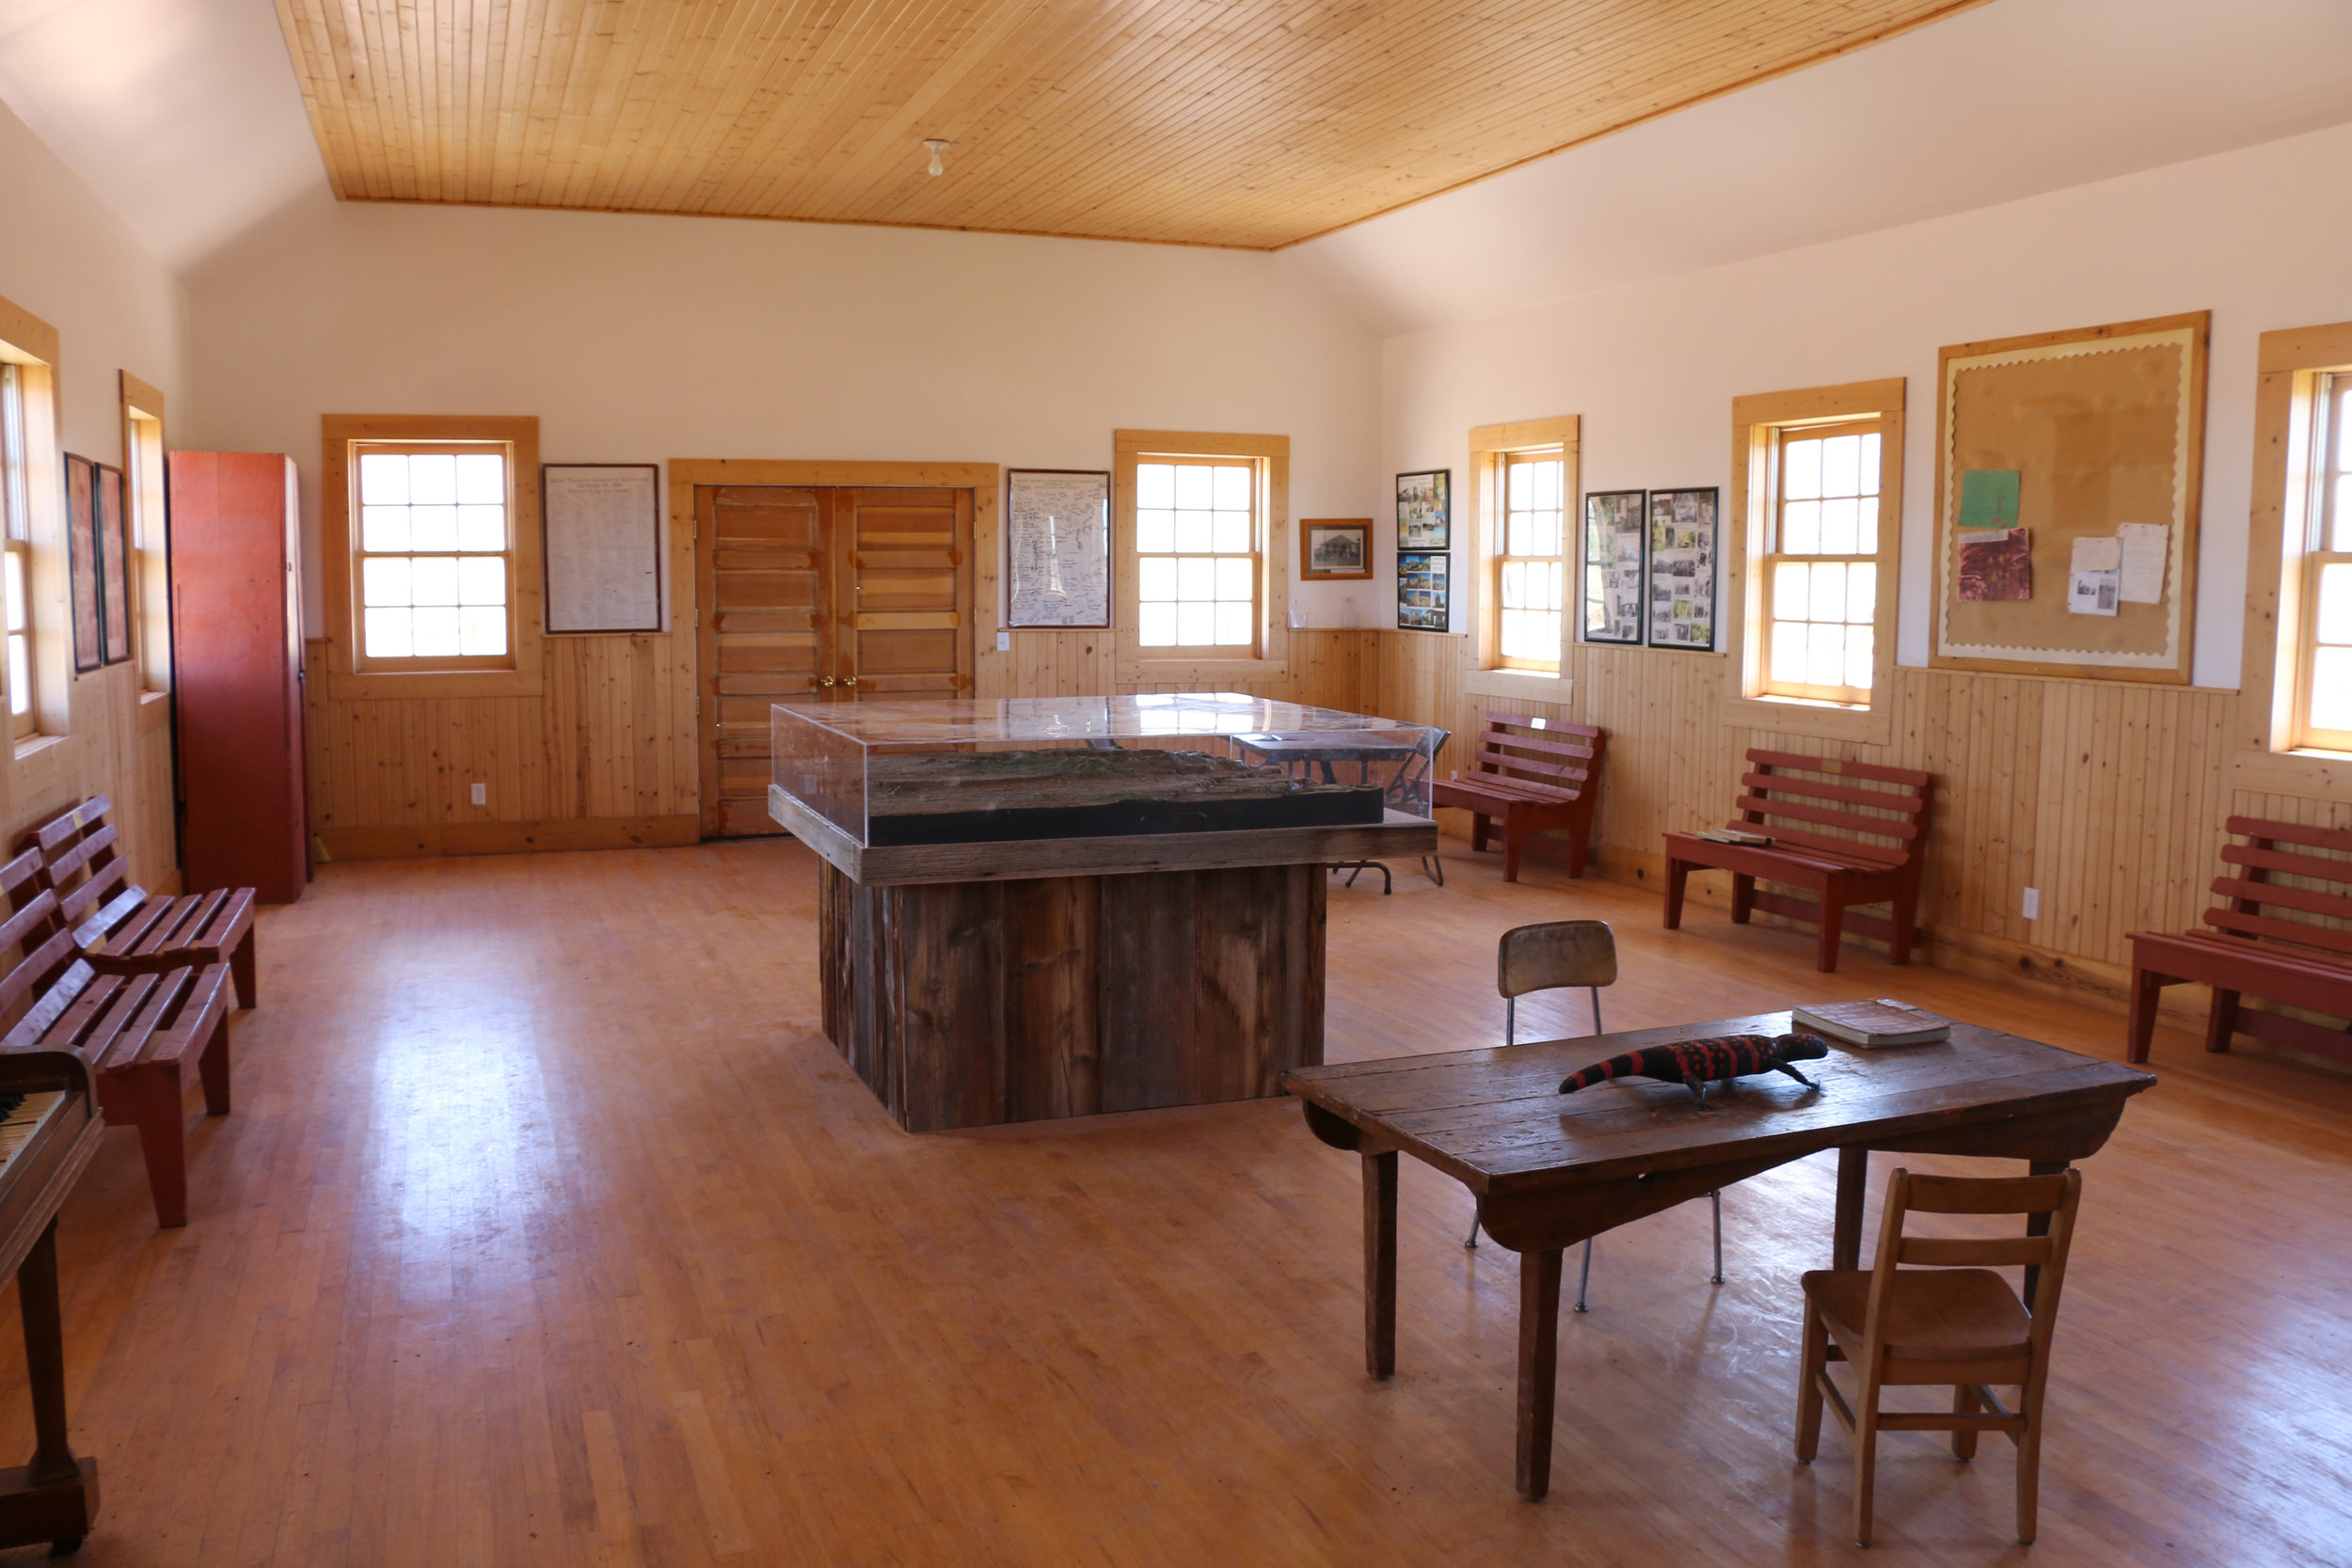 Inside the beautifully restored schoolhouse.